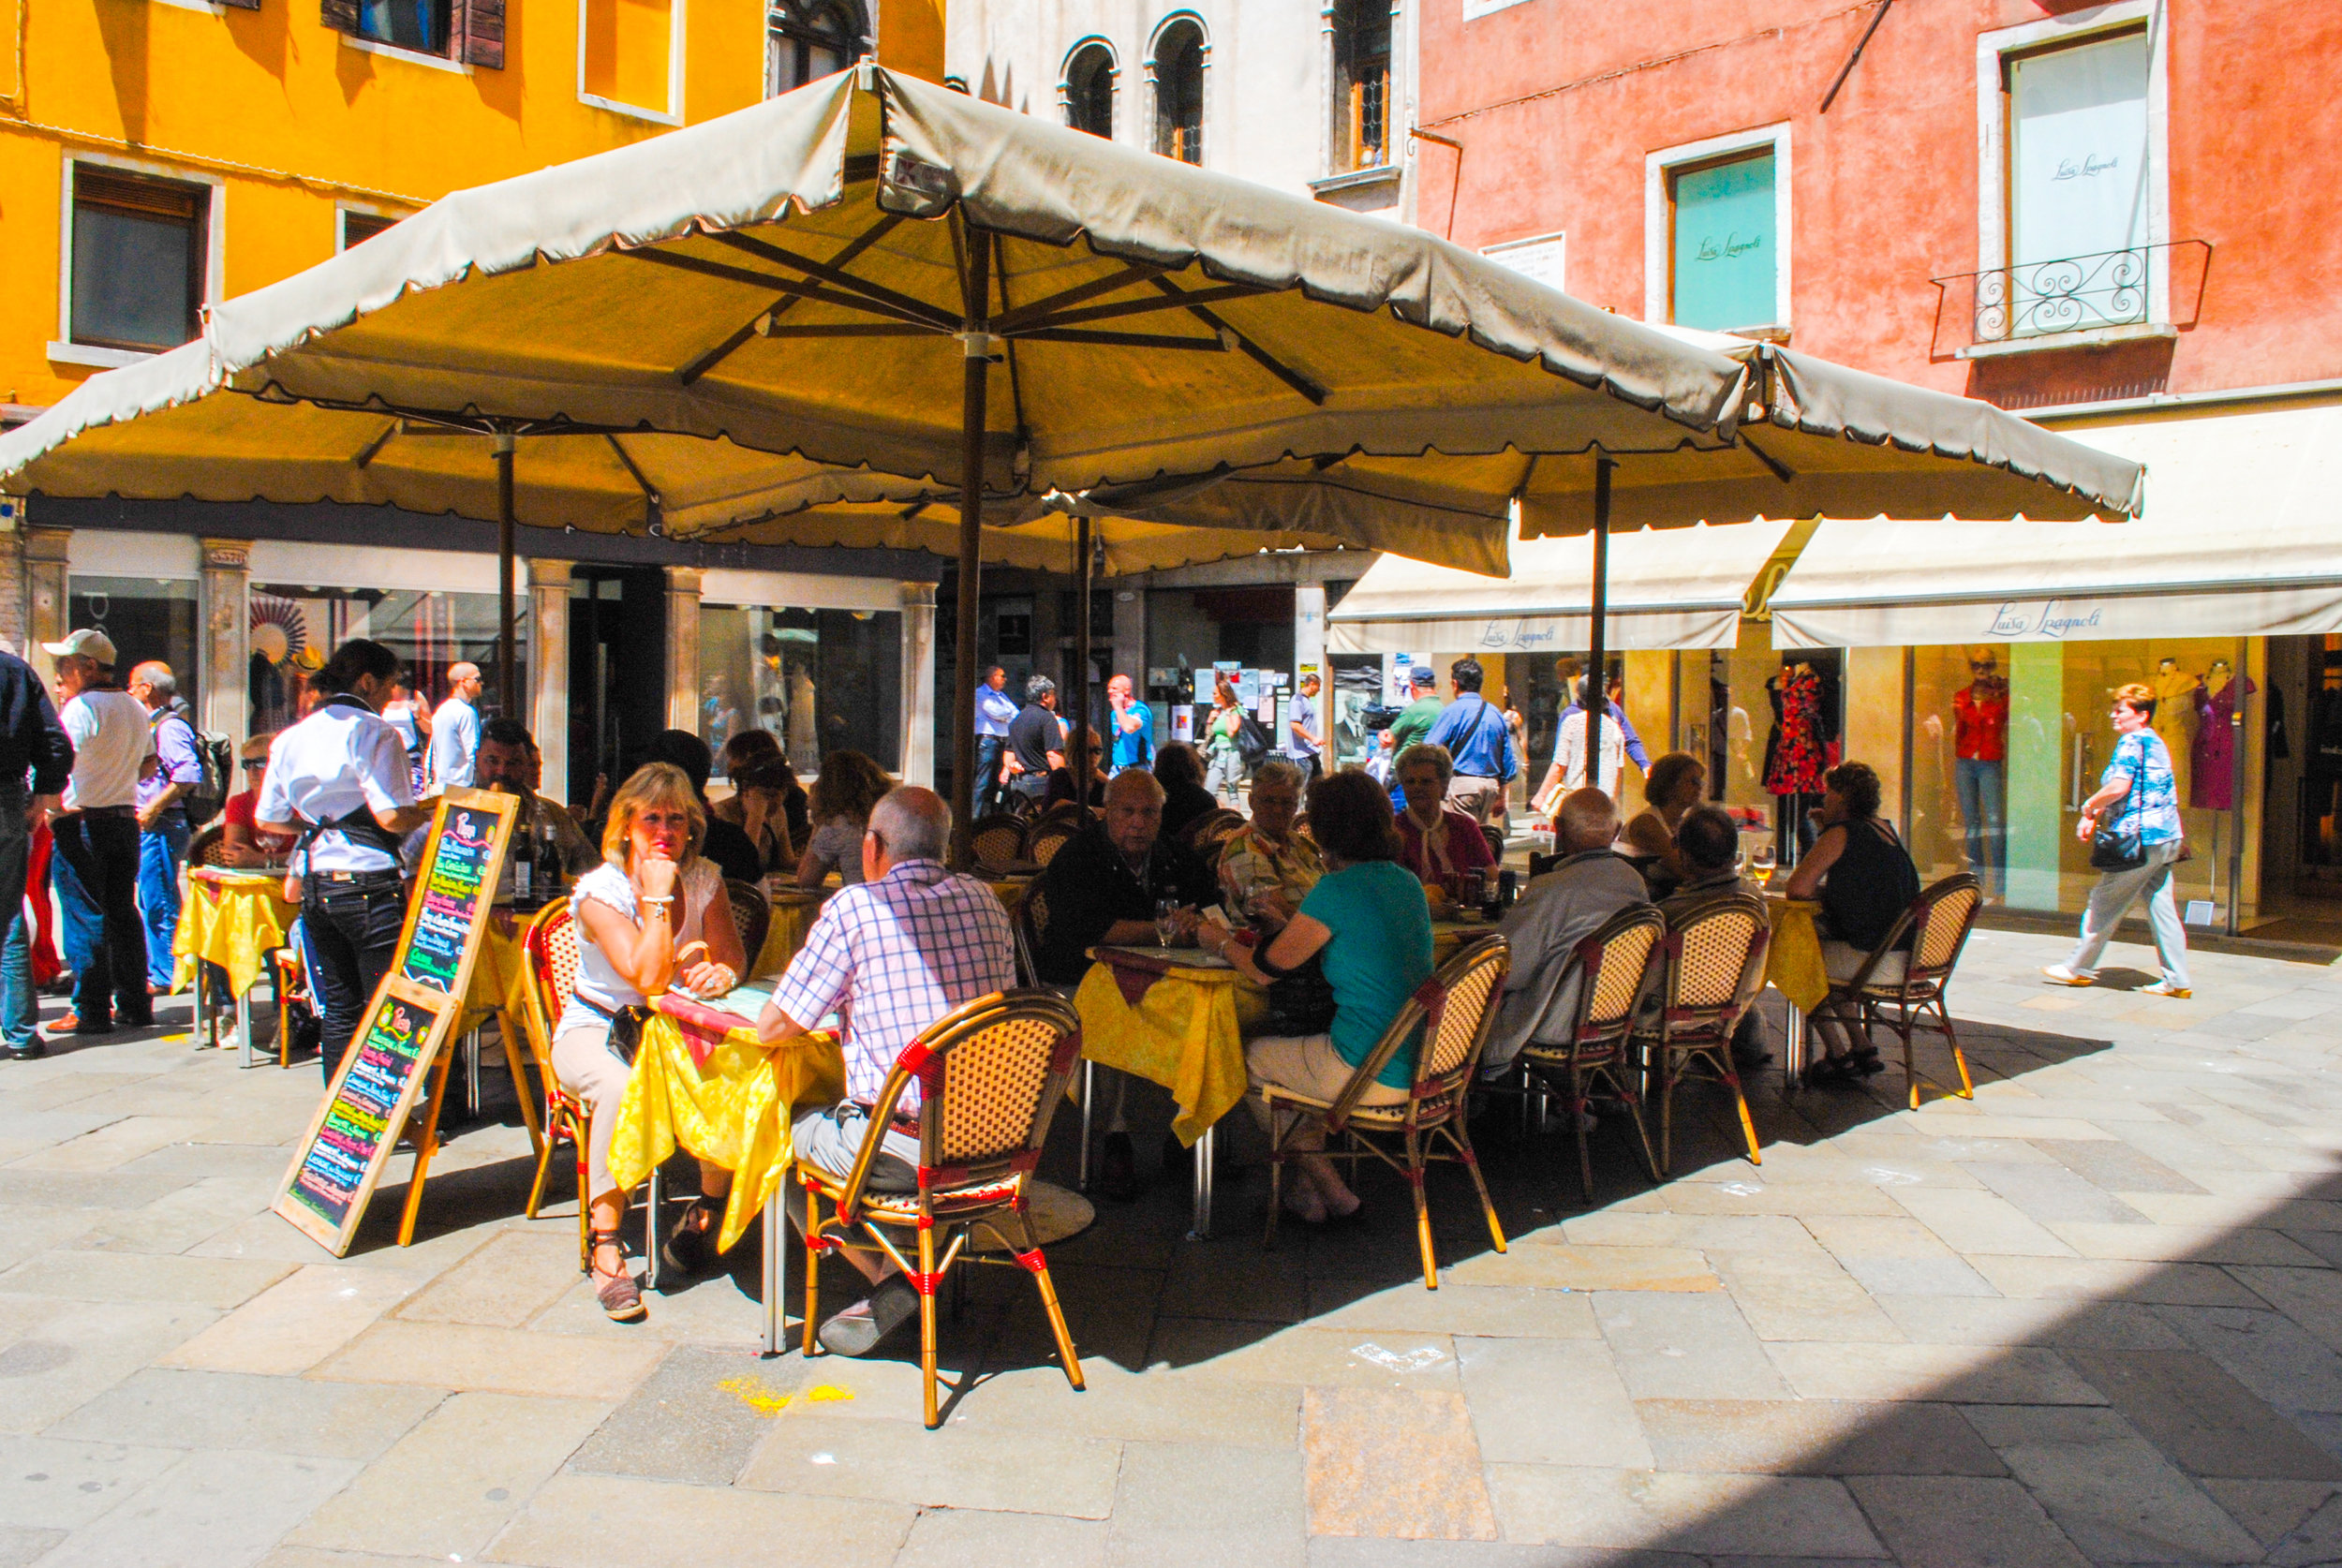 10 Things NOT to do in Venice (and what to do instead)